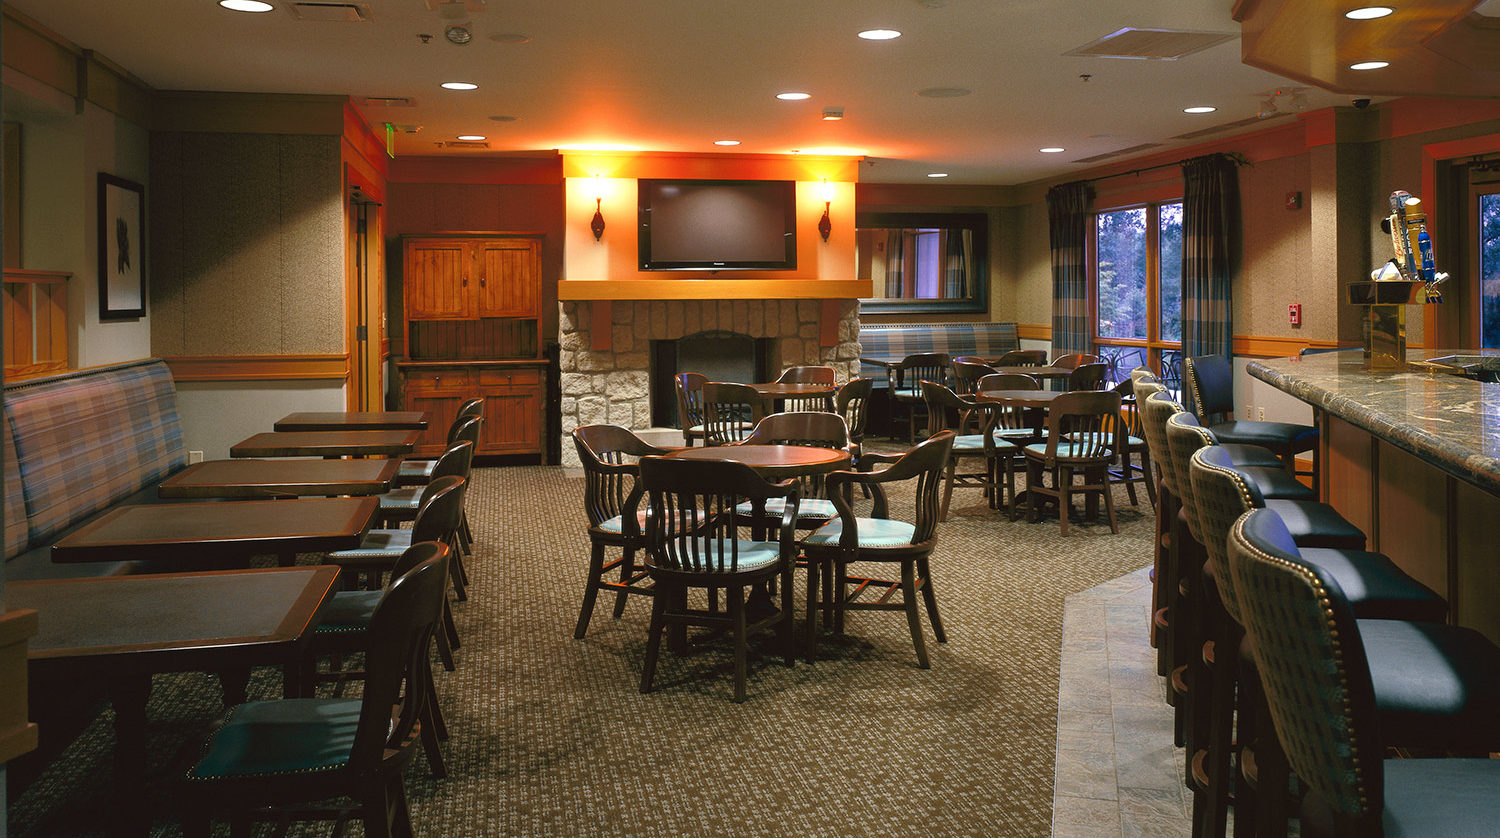 Boughton Ridge Golf Clubhouse Bolingbrook Park District interior